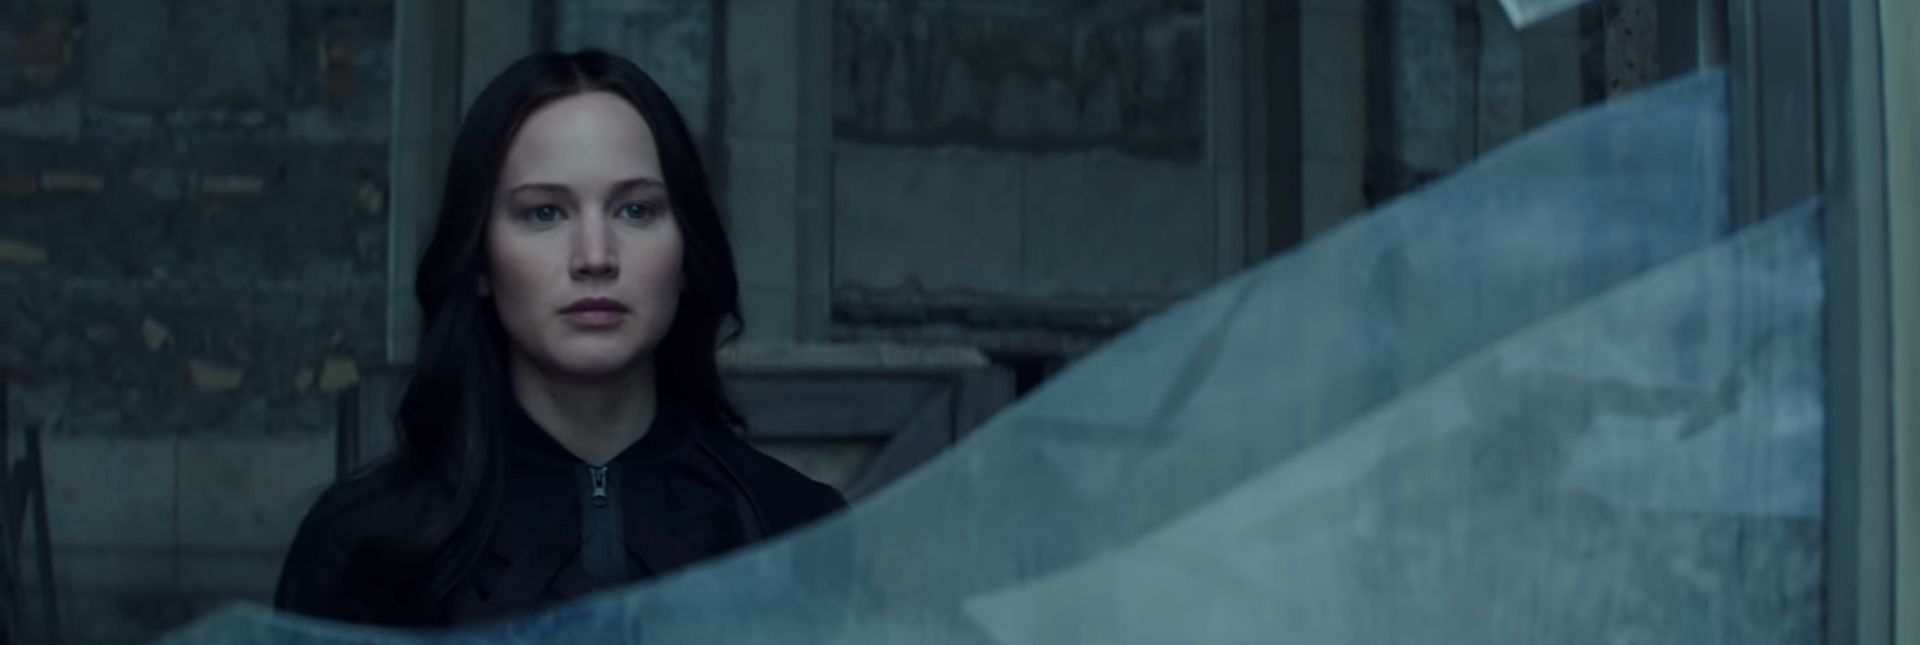 Hunger Games: Mockingjay Part 2. Image Credit: Lionsgate